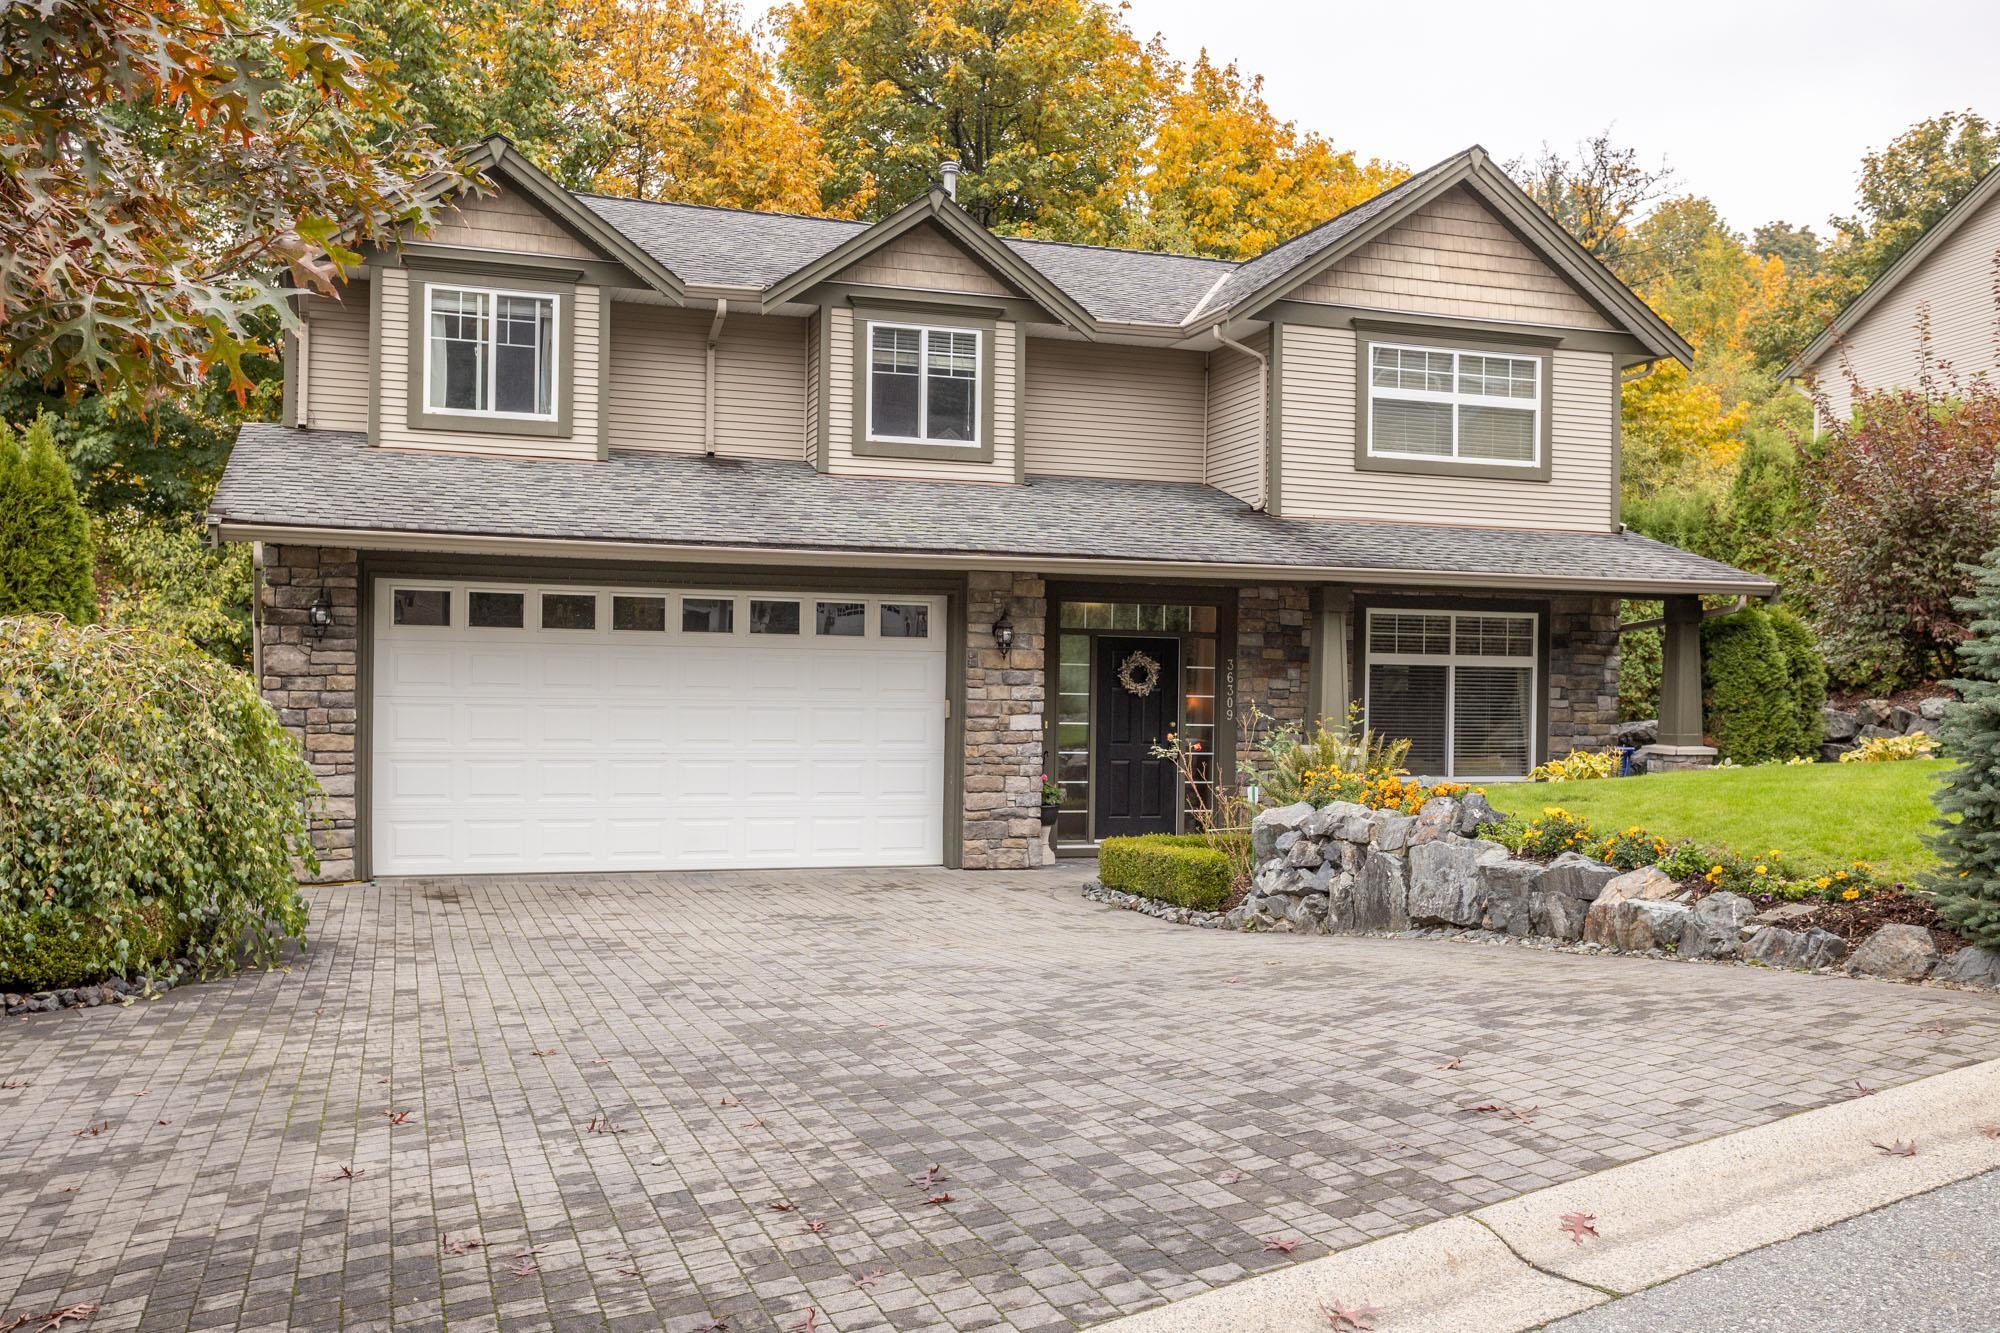 36309 WESTMINSTER DRIVE - Abbotsford East House/Single Family for sale, 6 Bedrooms (R2626884) - #1